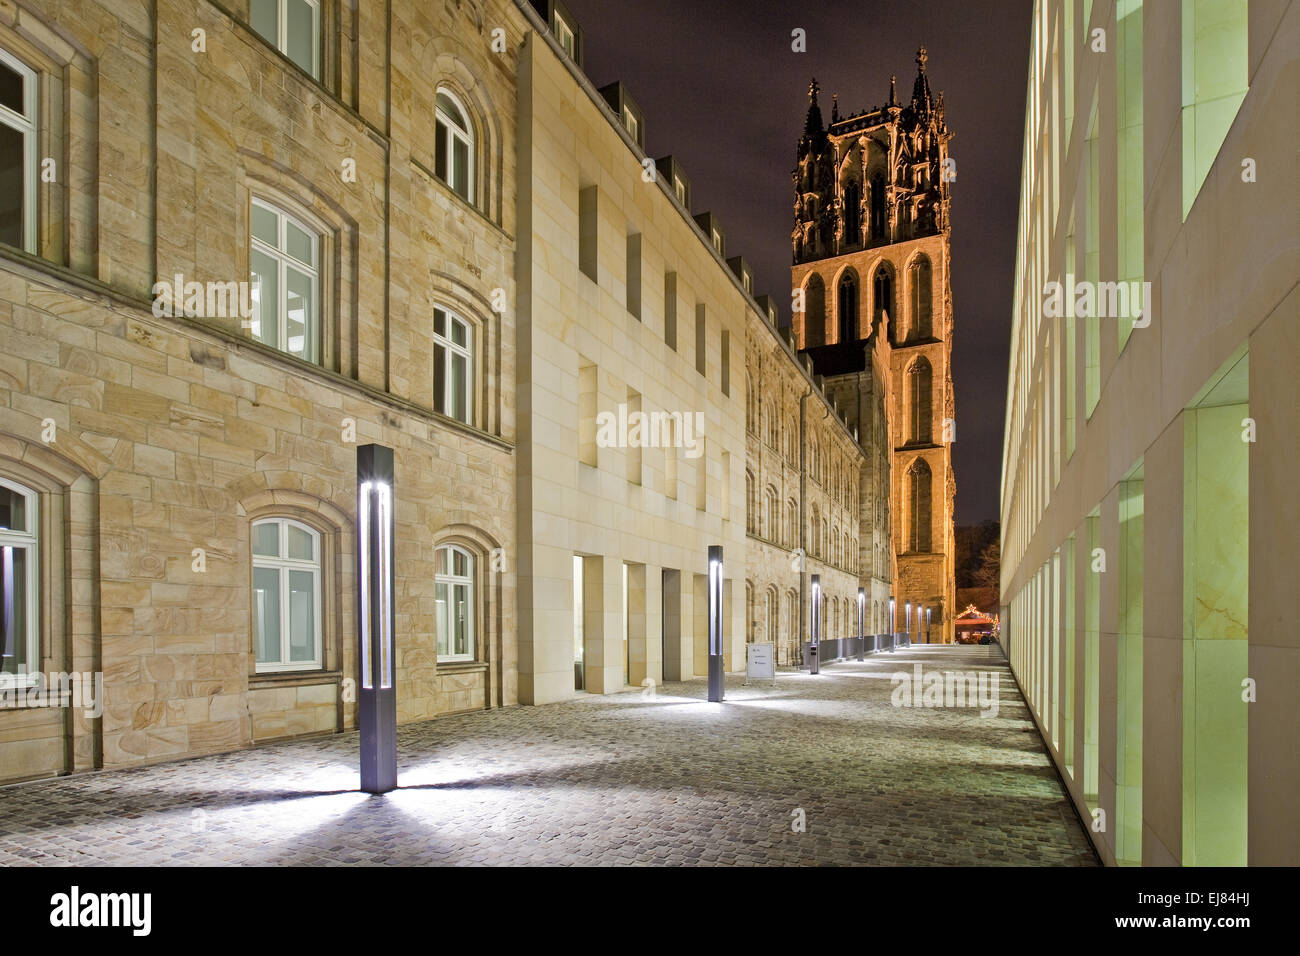 New and old architecture, Muenster, Germany - Stock Image